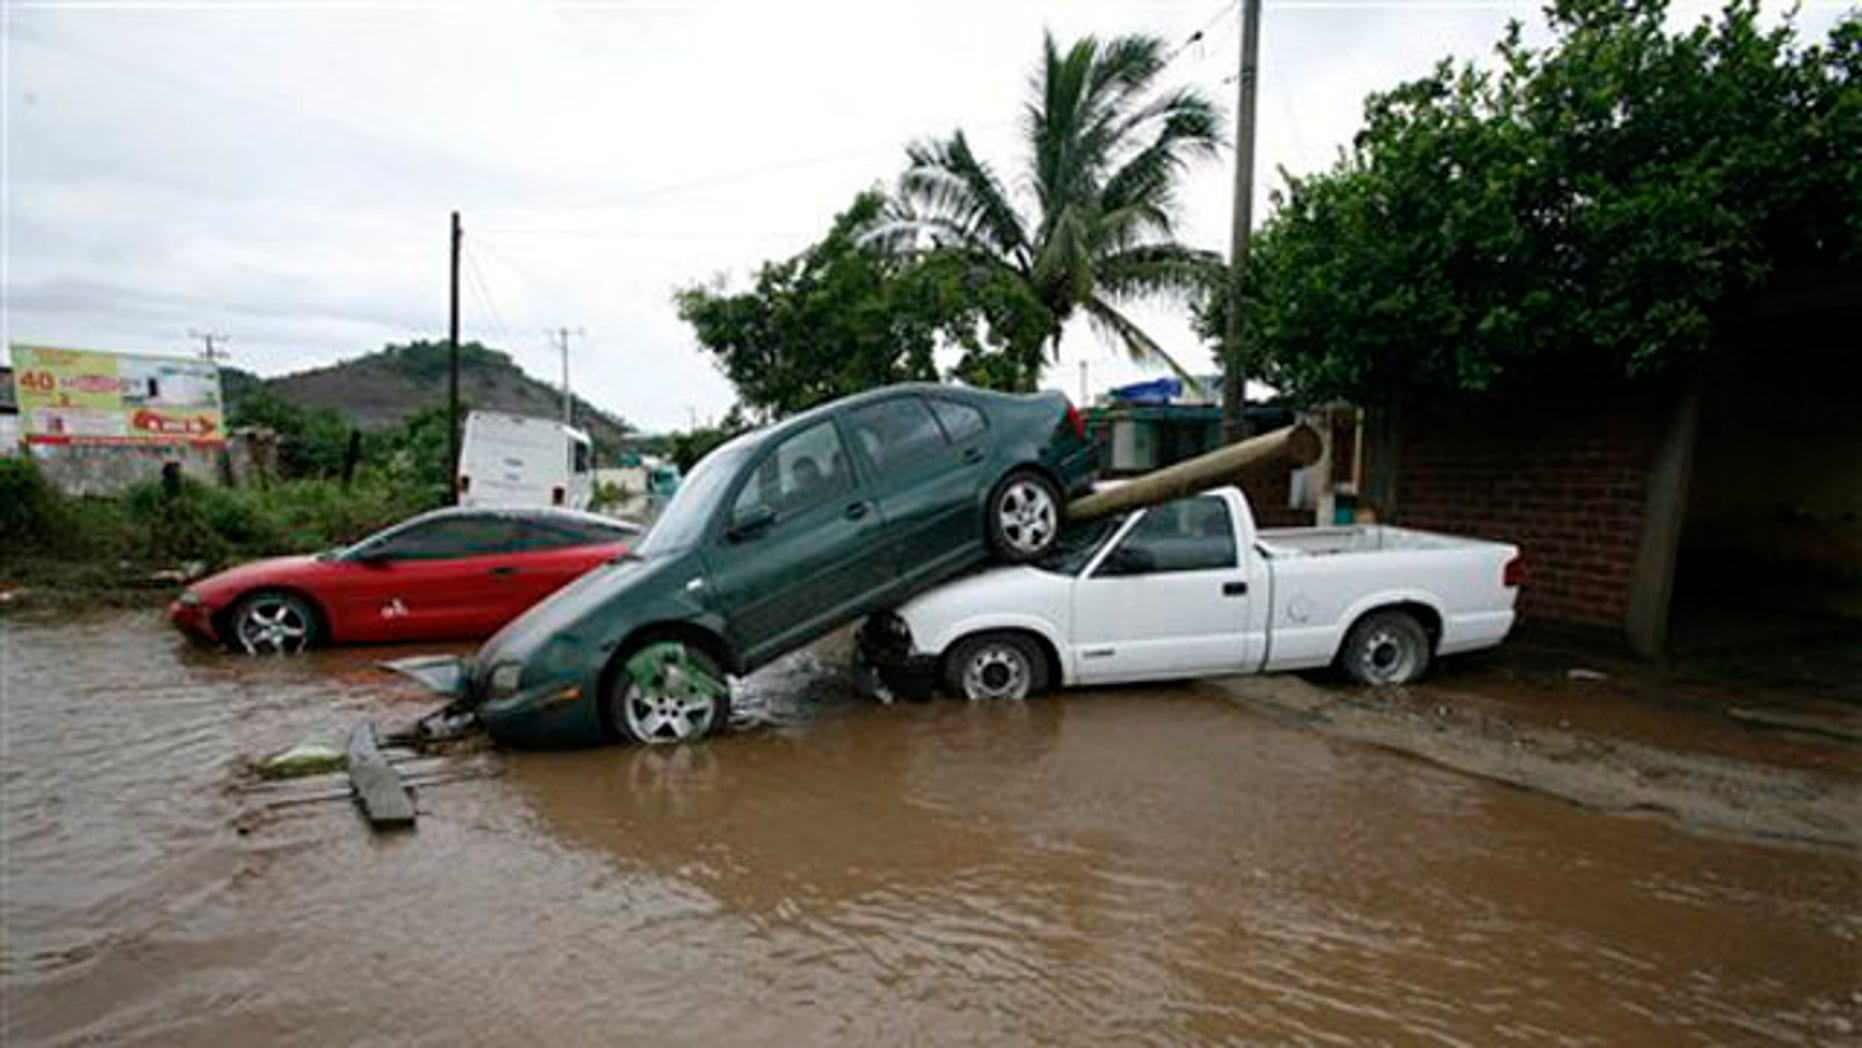 Cars pile up after being dragged by flood waters in Villa de Coral, Mexico, Wednesday Oct. 12, 2011.